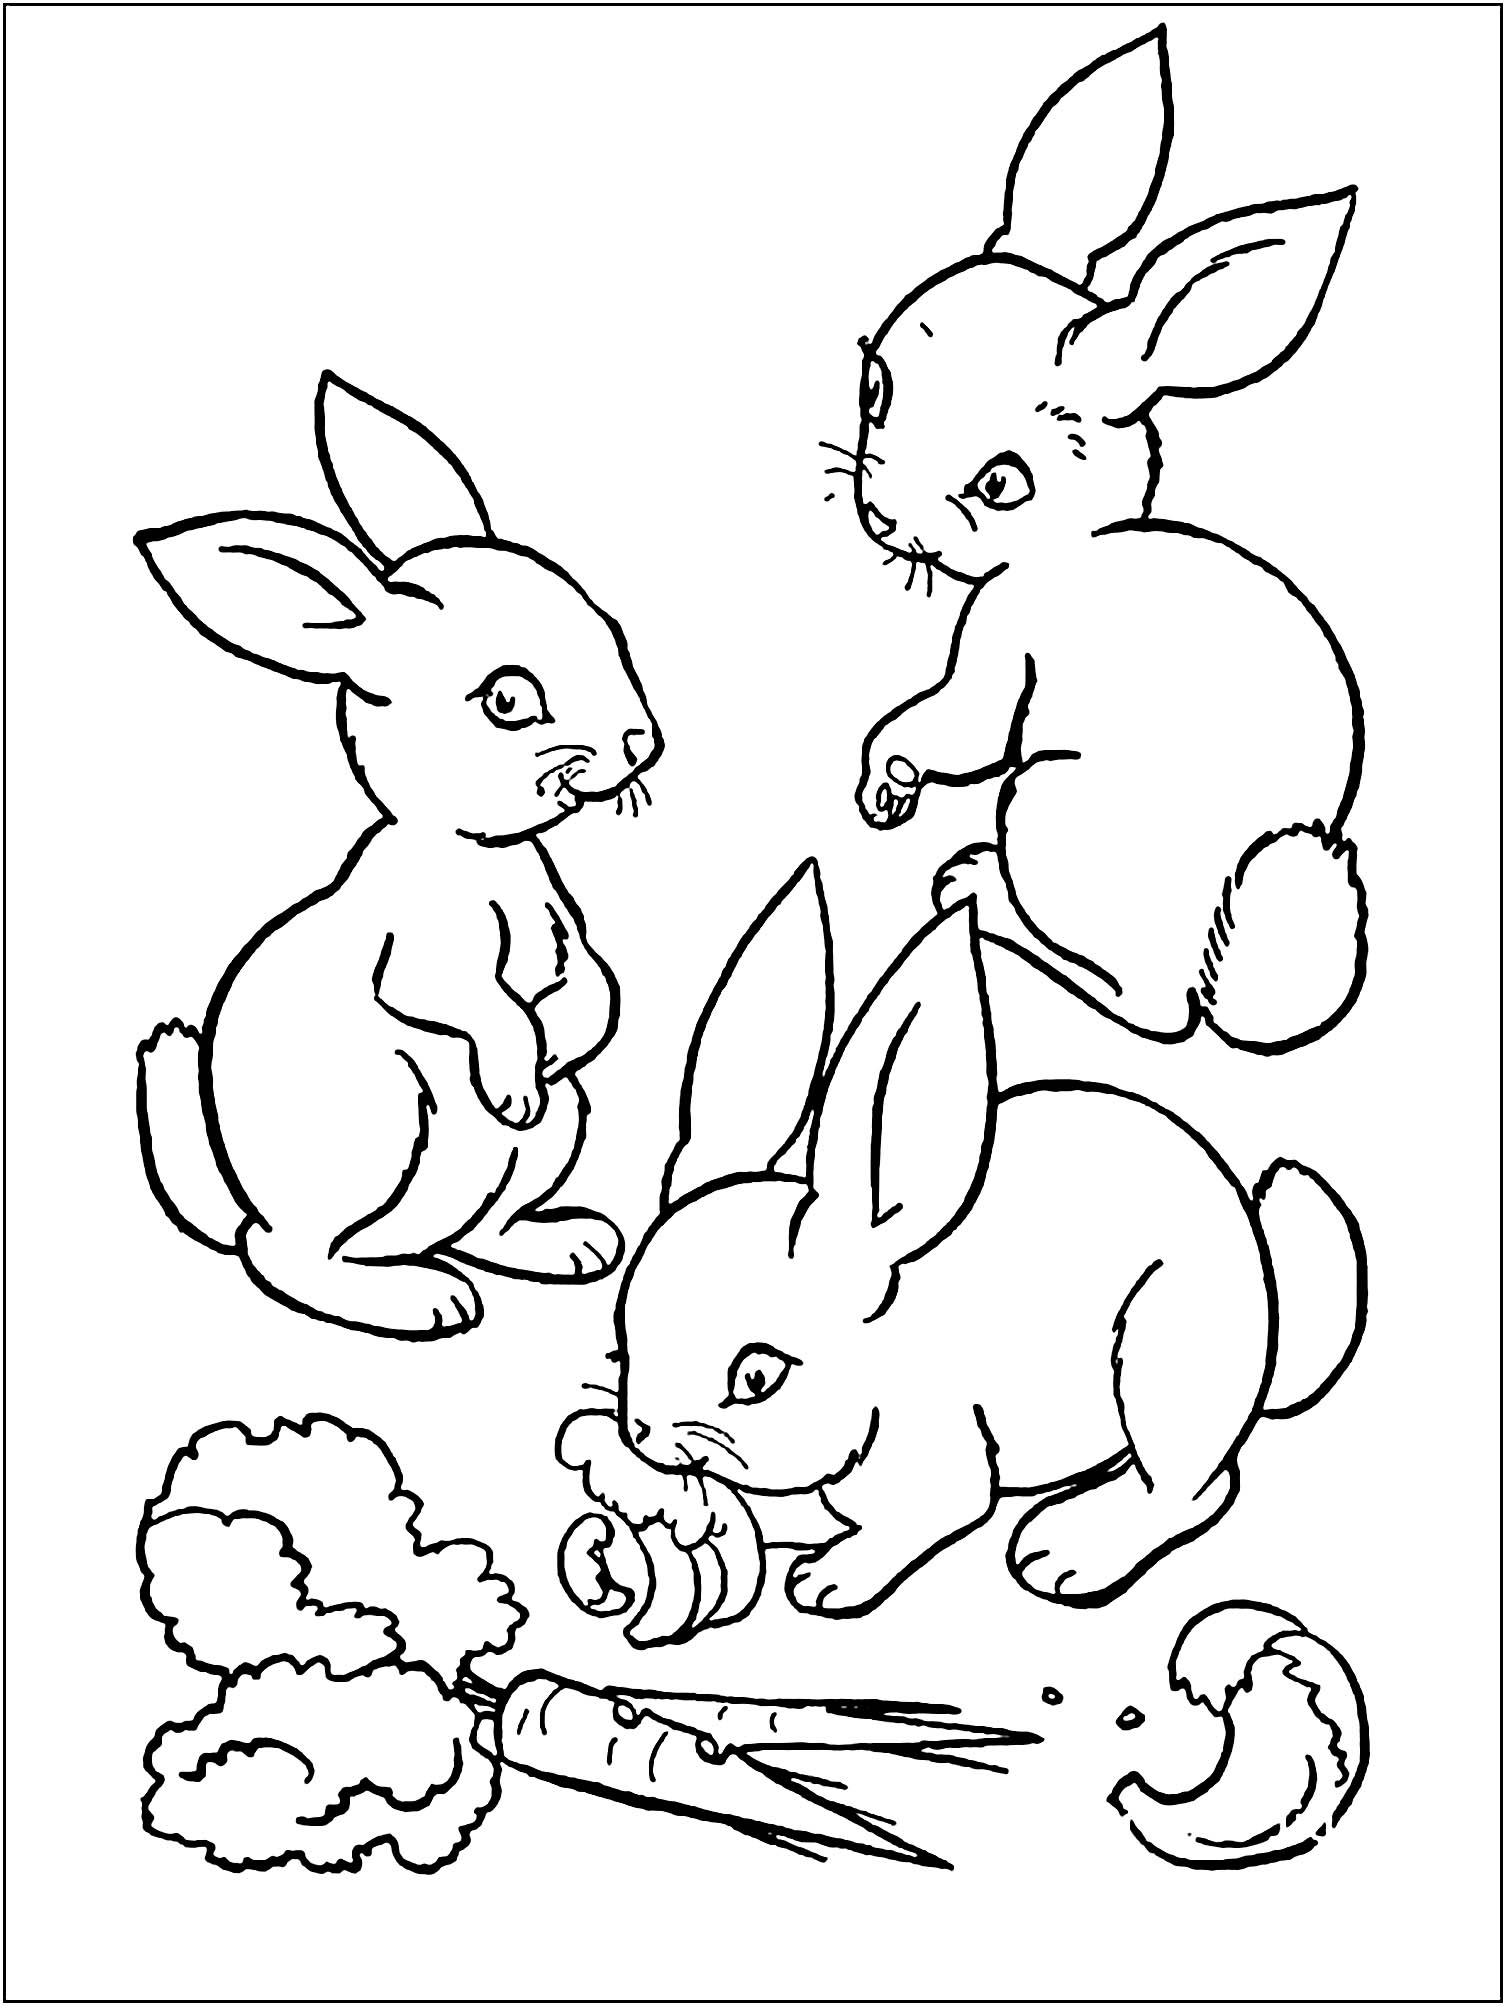 rabbit coloring pictures rabbit free to color for children rabbit kids coloring pages pictures rabbit coloring